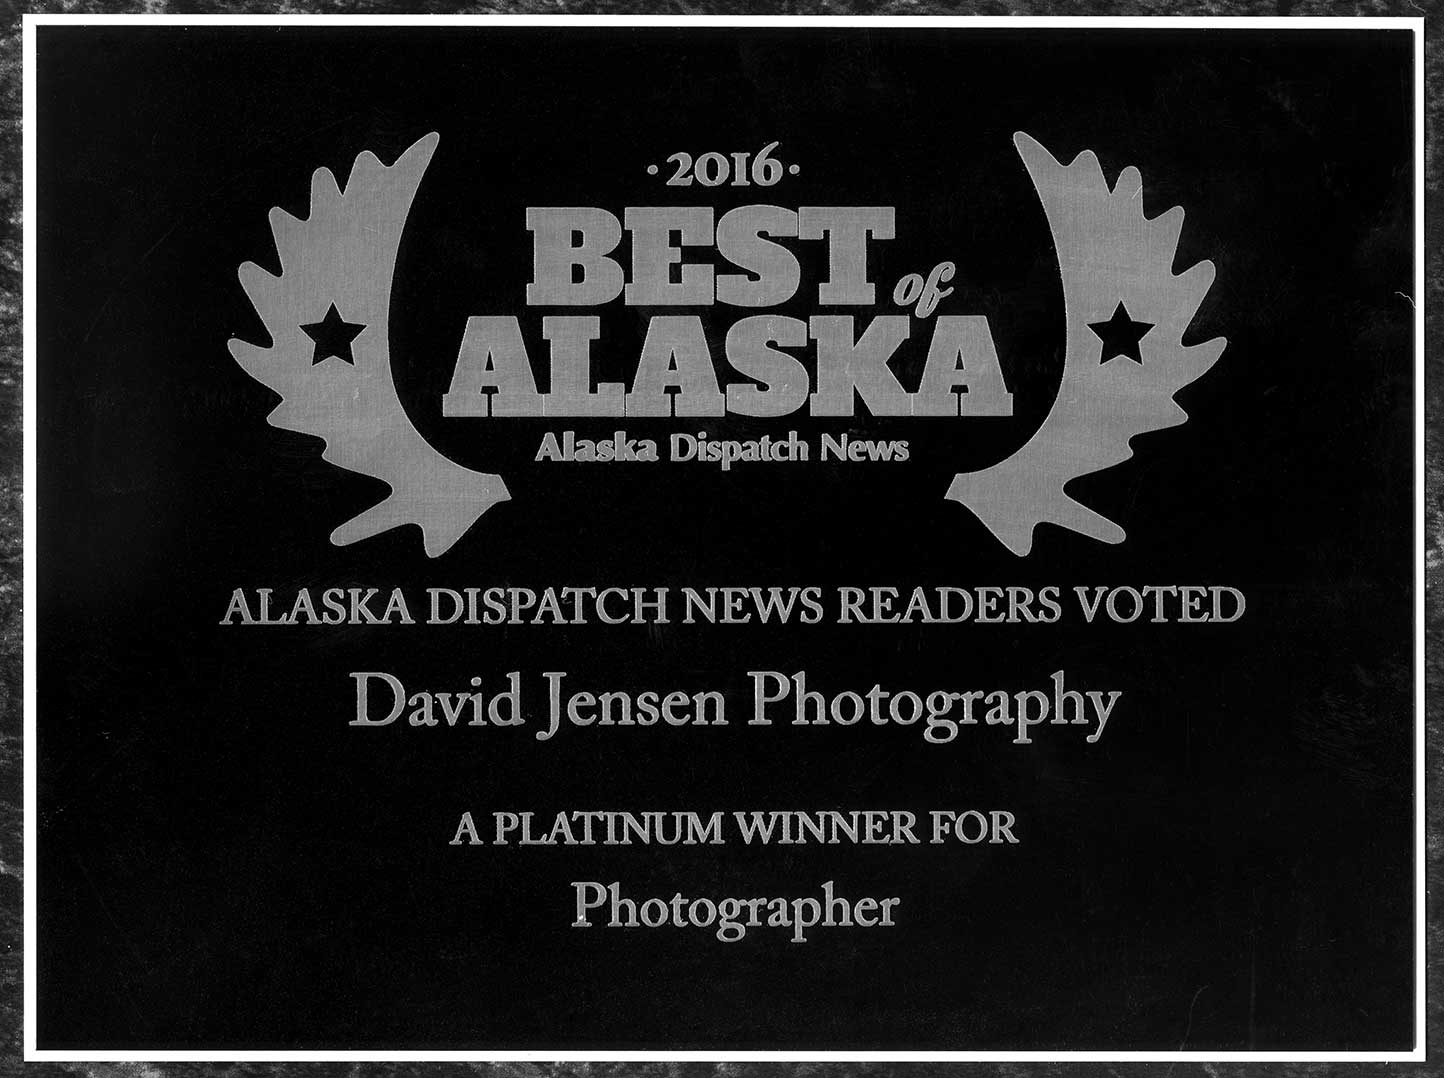 A huge thank you to everyone at Alaska Dispatch News - staff and subscribers - for voting the studio  Best of Alaska 2016 - Platinum.   I'm proud to call Alaska my life-long home of nearly 60 years.  And it's such a huge honor to continue receiving your support of my photography work since 1989.